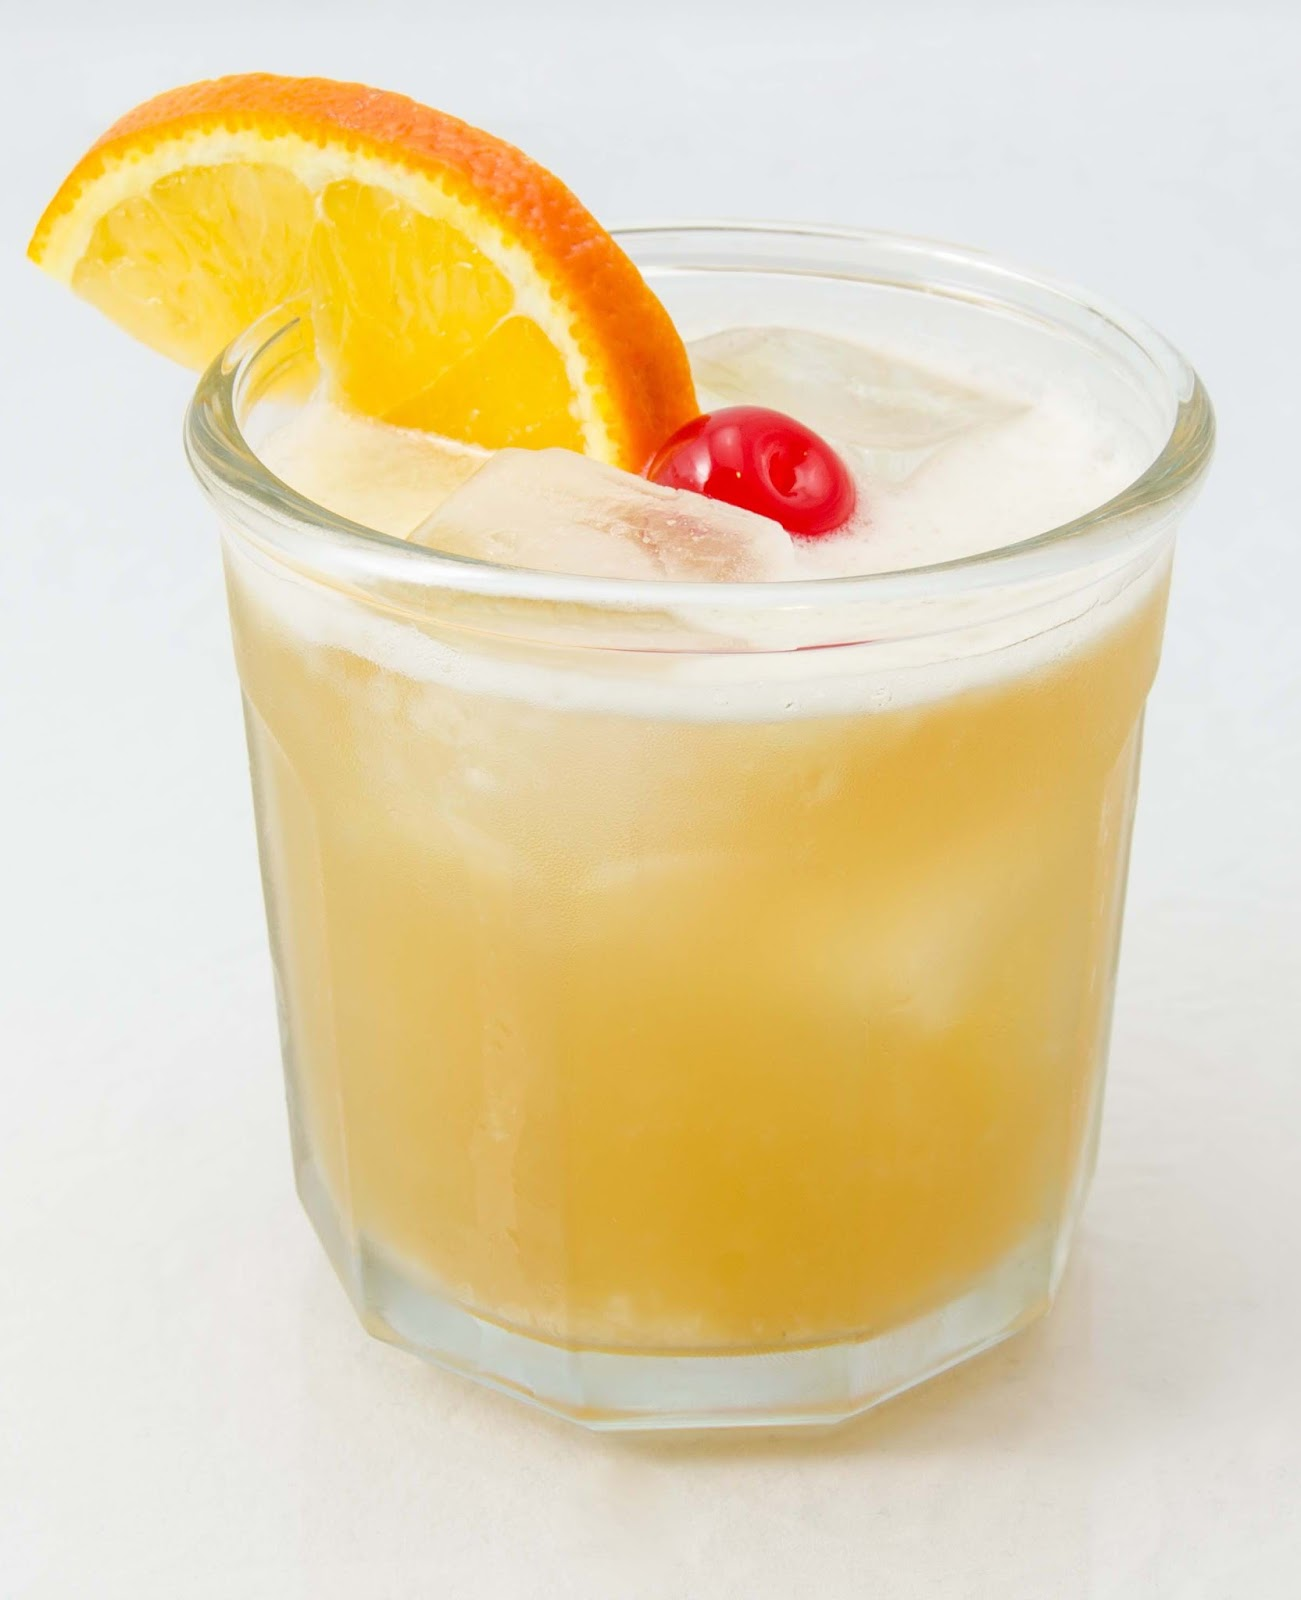 ... by the Boot: Whiskey 401: Dissecting a cocktail: The Whiskey sour